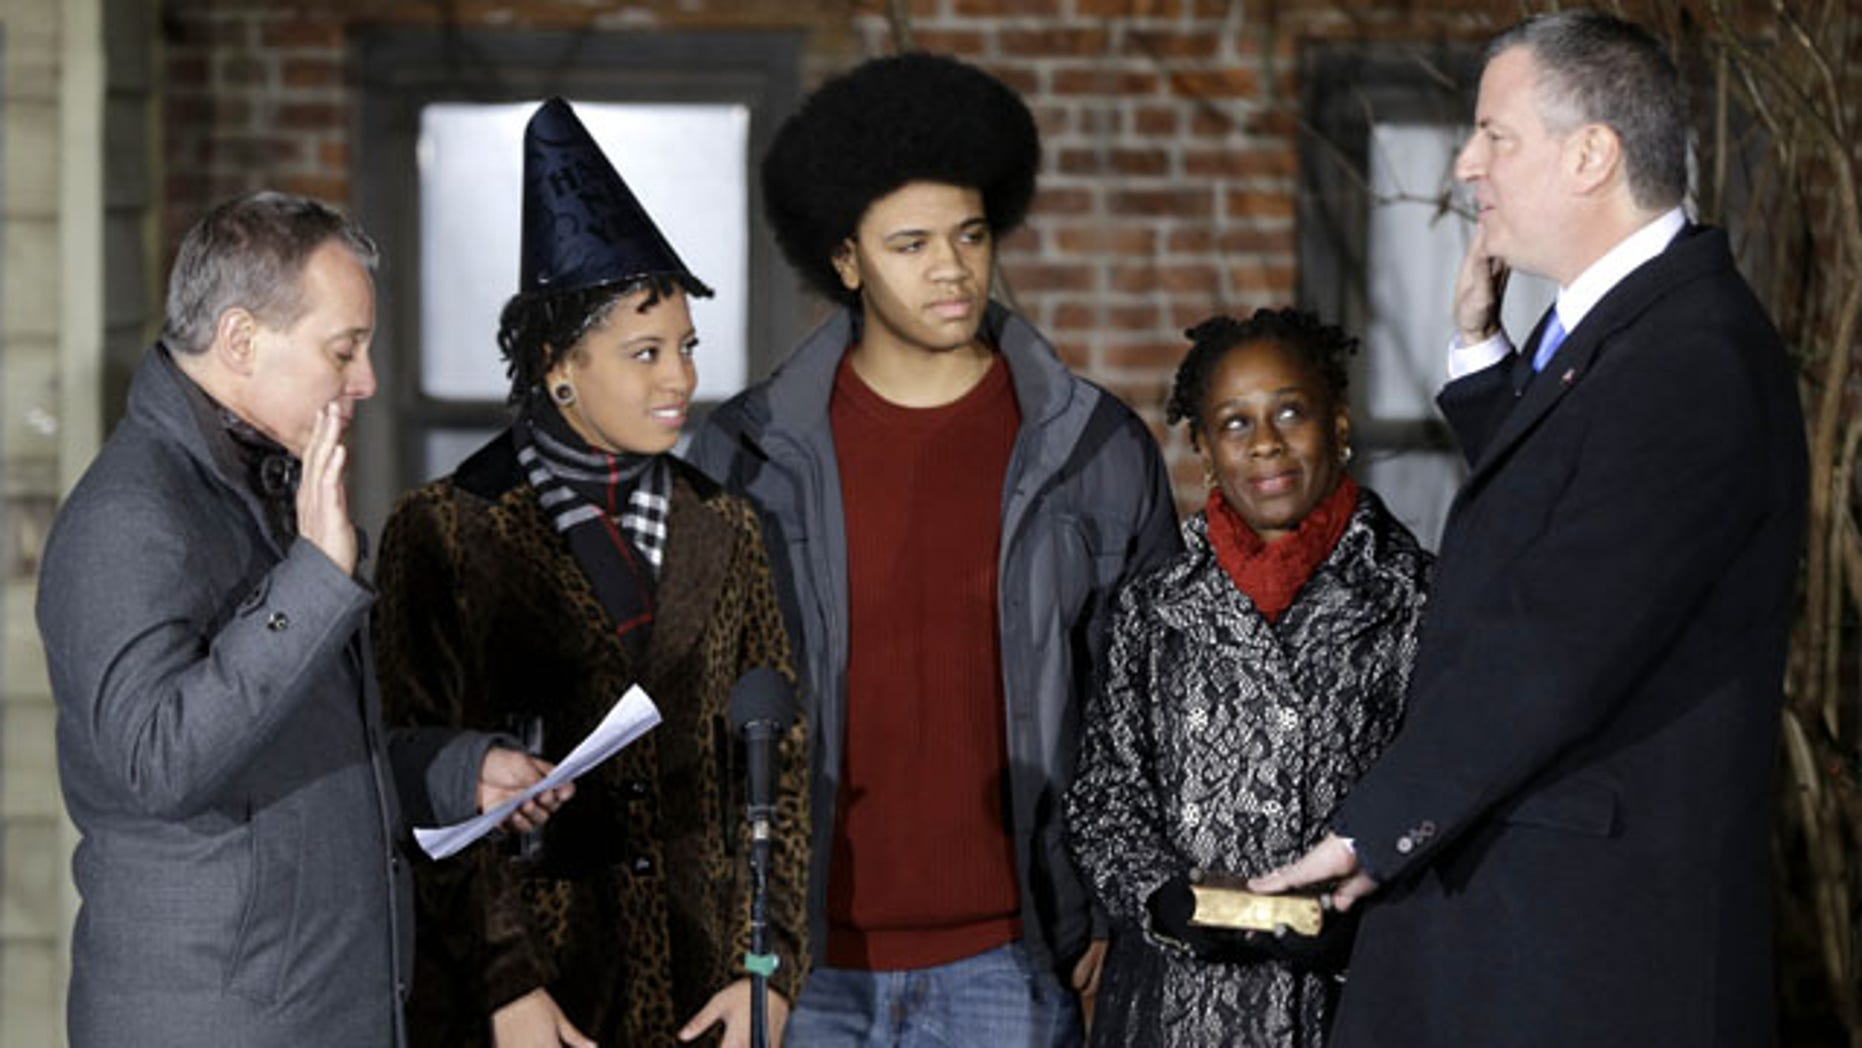 January 1, 2013: Bill de Blasio, right, is sworn in as the mayor of New York City by State Attorney General Eric Schneiderman, left, while his family, Chiara de Blasio, second from left, Dante de Blasio, center, and Chirlane McCray look on. De Blasio took the oath of office moments after midnight at his home in Park Slope, Brooklyn. (AP Photo)